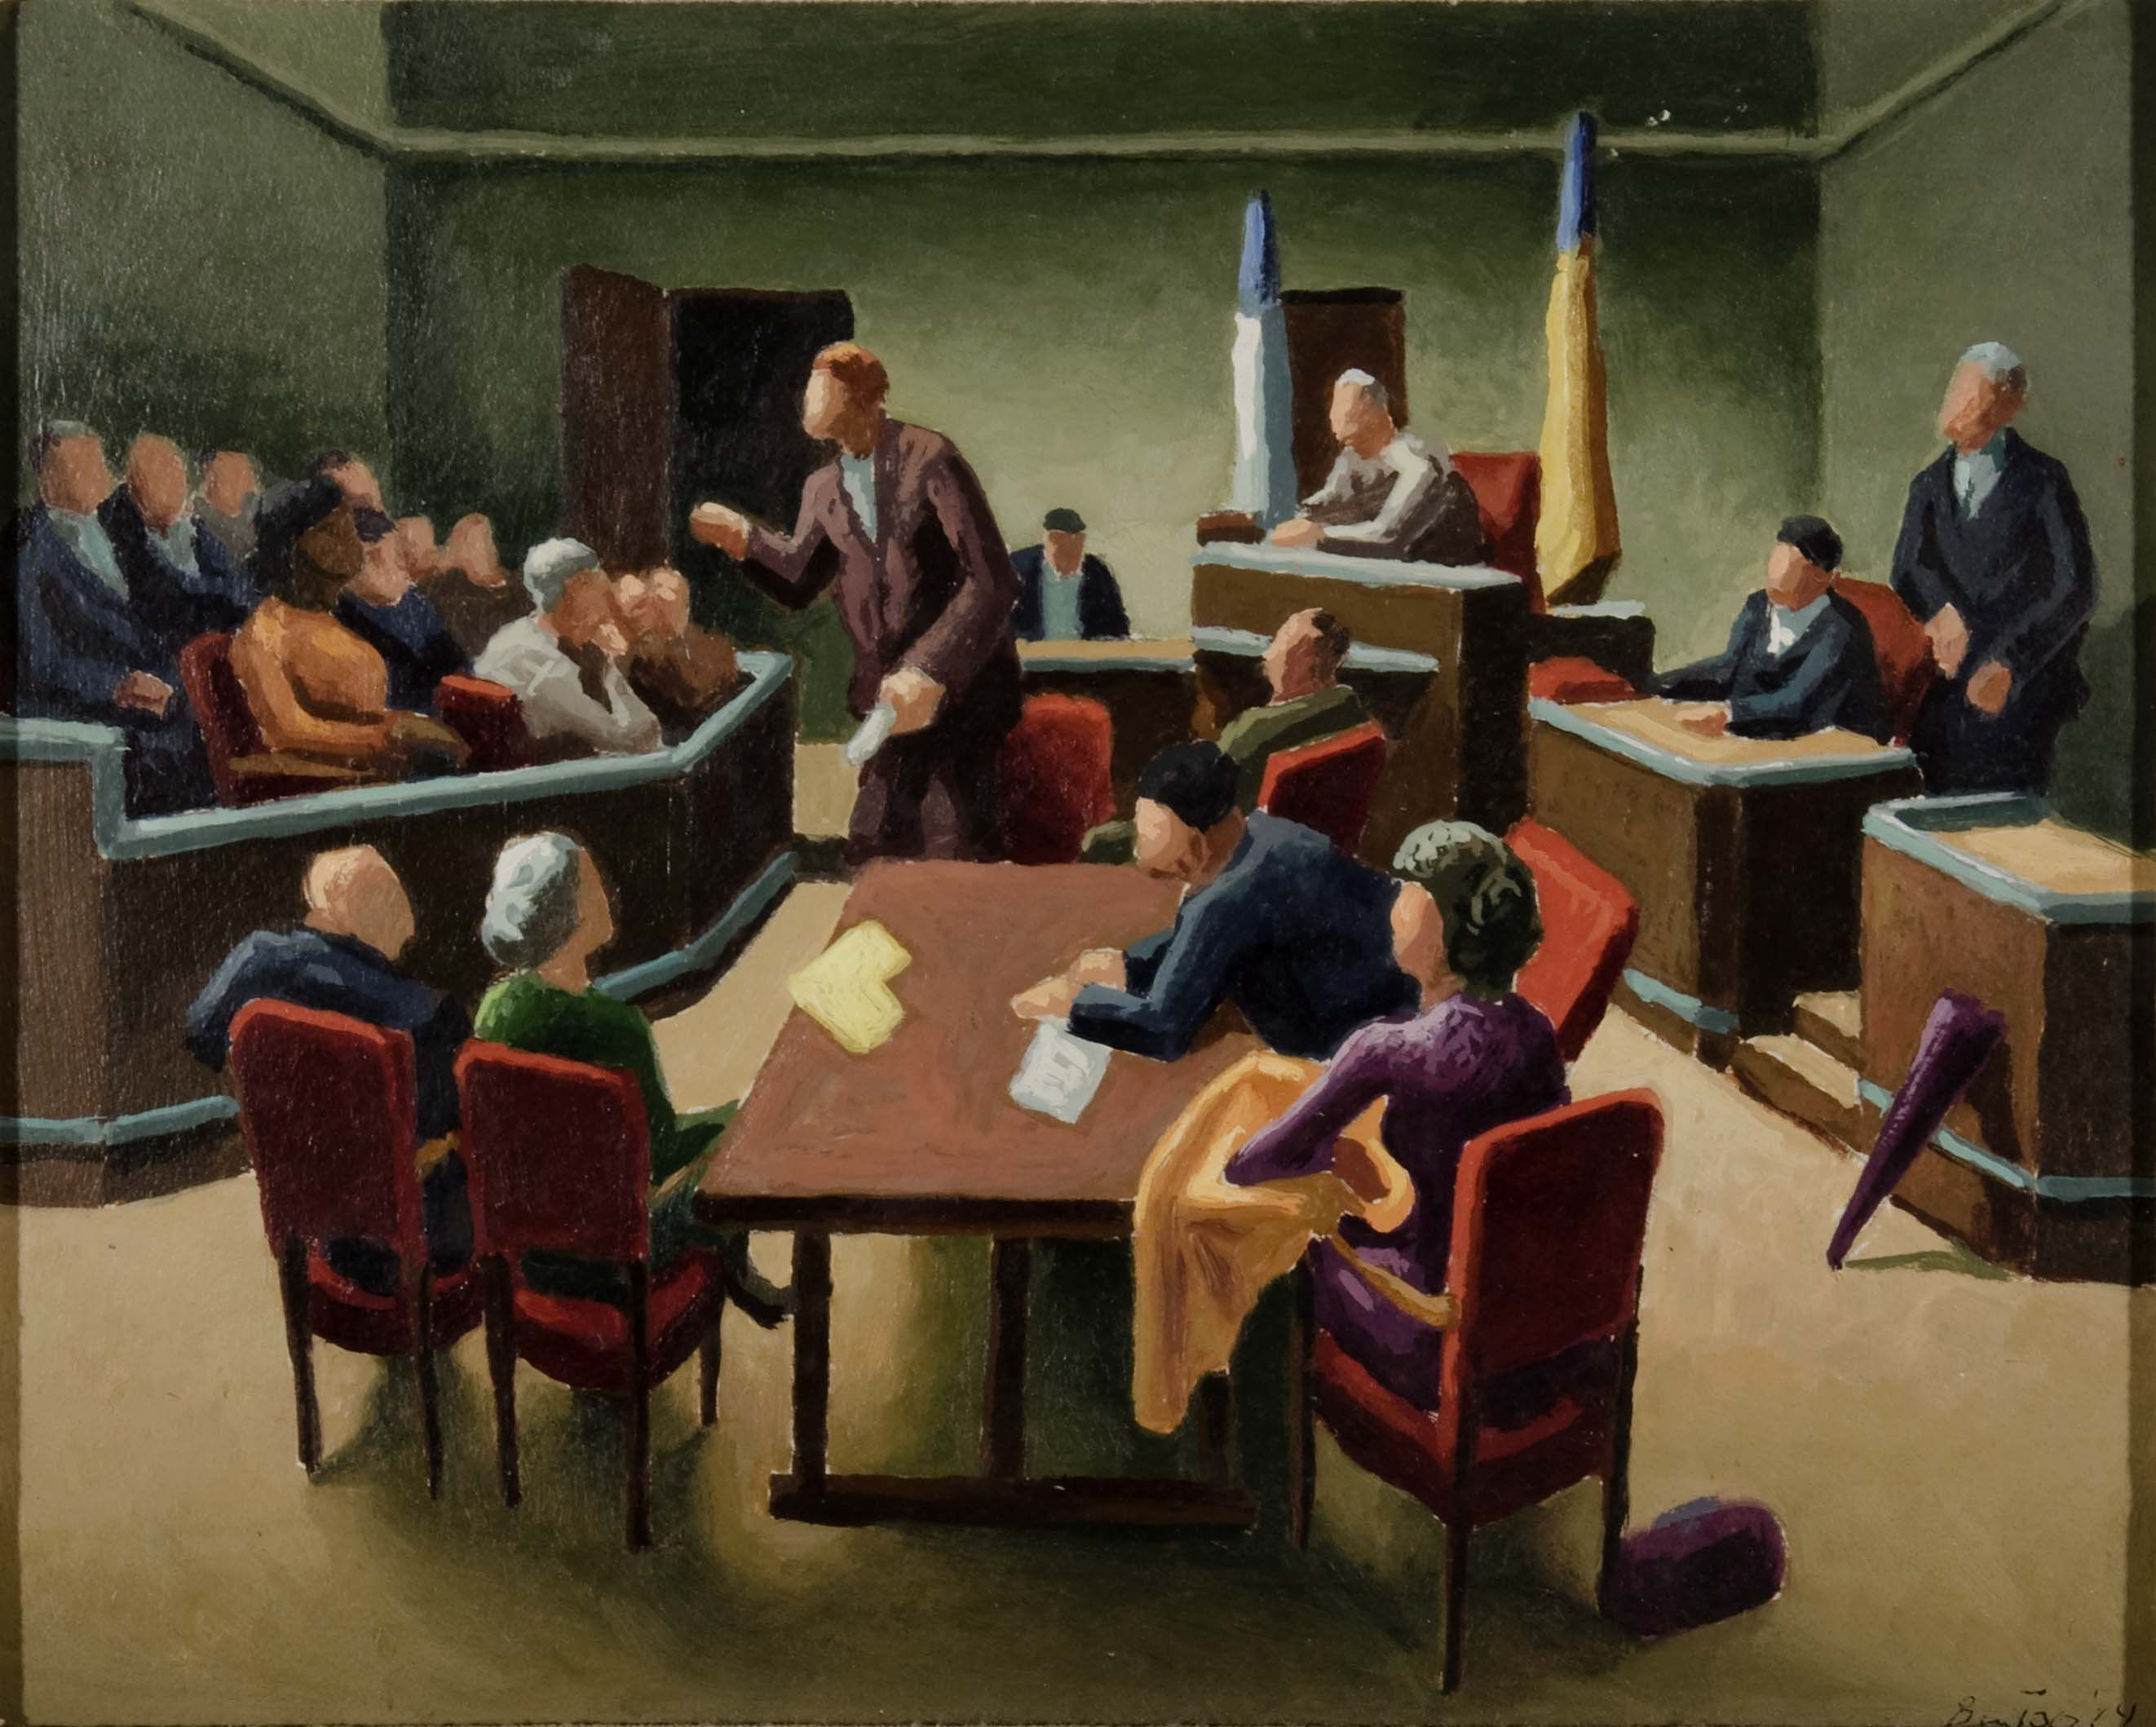 an analysis of the american jury on justice which is challenged In english and american law, the right of peremptory challenge is a right in jury selection for the  the right of peremptory challenge was abolished altogether by the criminal justice act 1988, which saw it as a derogation from the principle of.